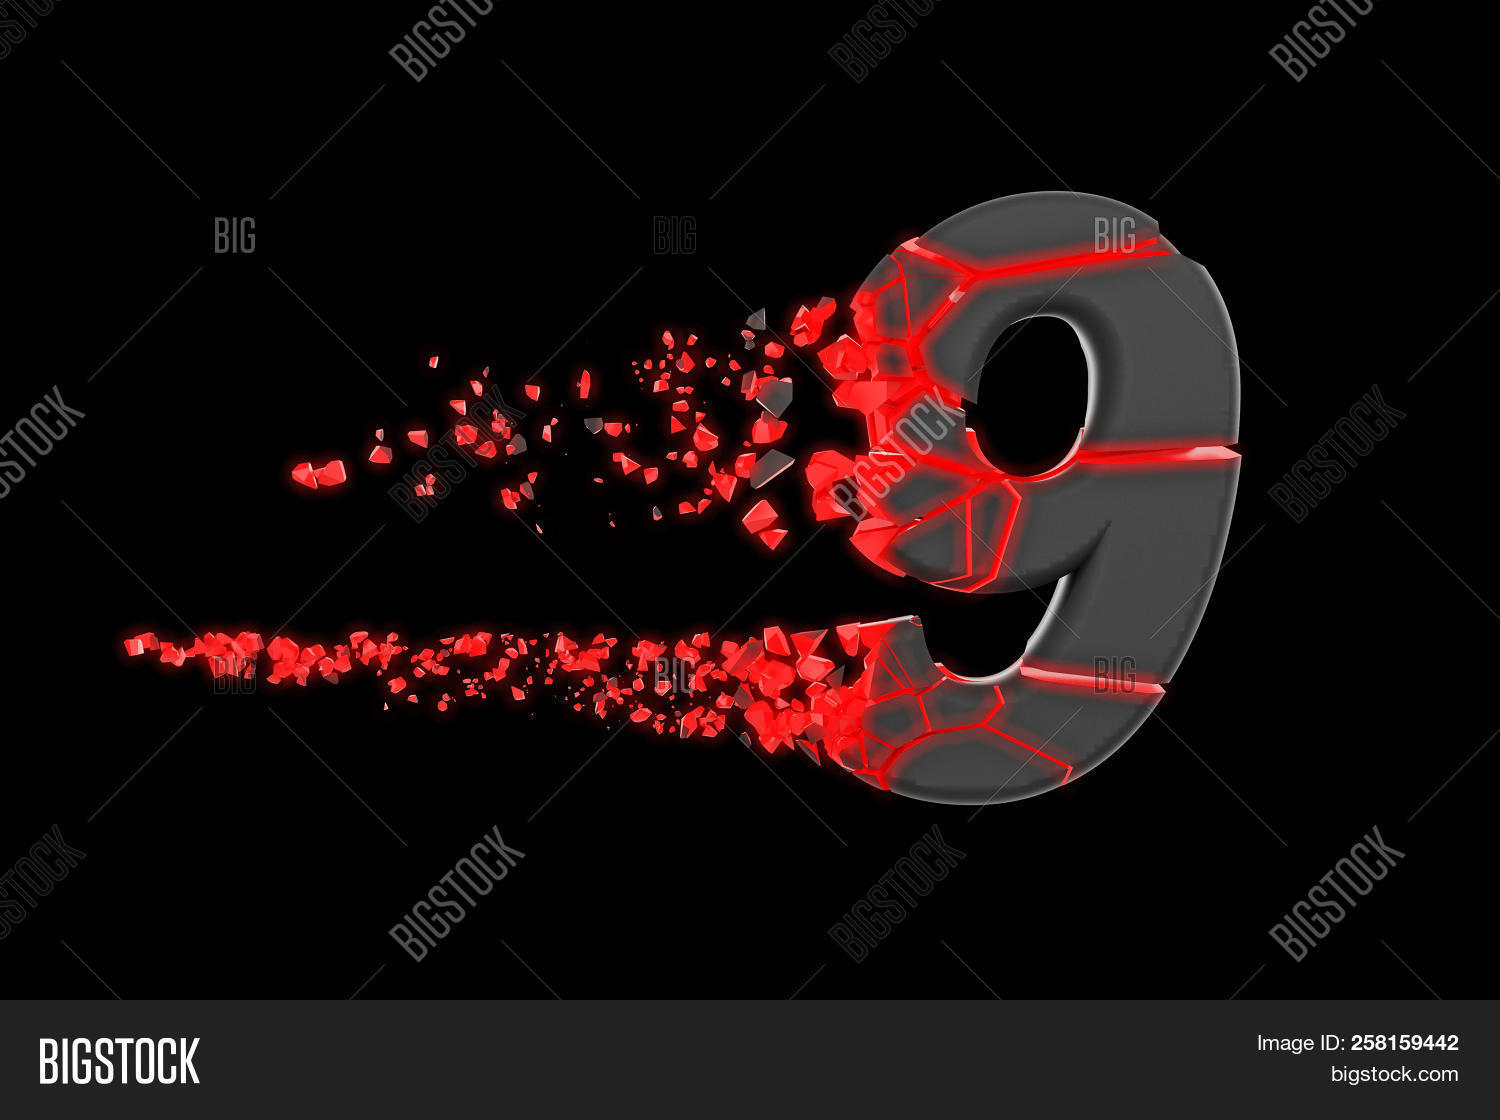 Broken Shattered Fast Image & Photo (Free Trial) | Bigstock